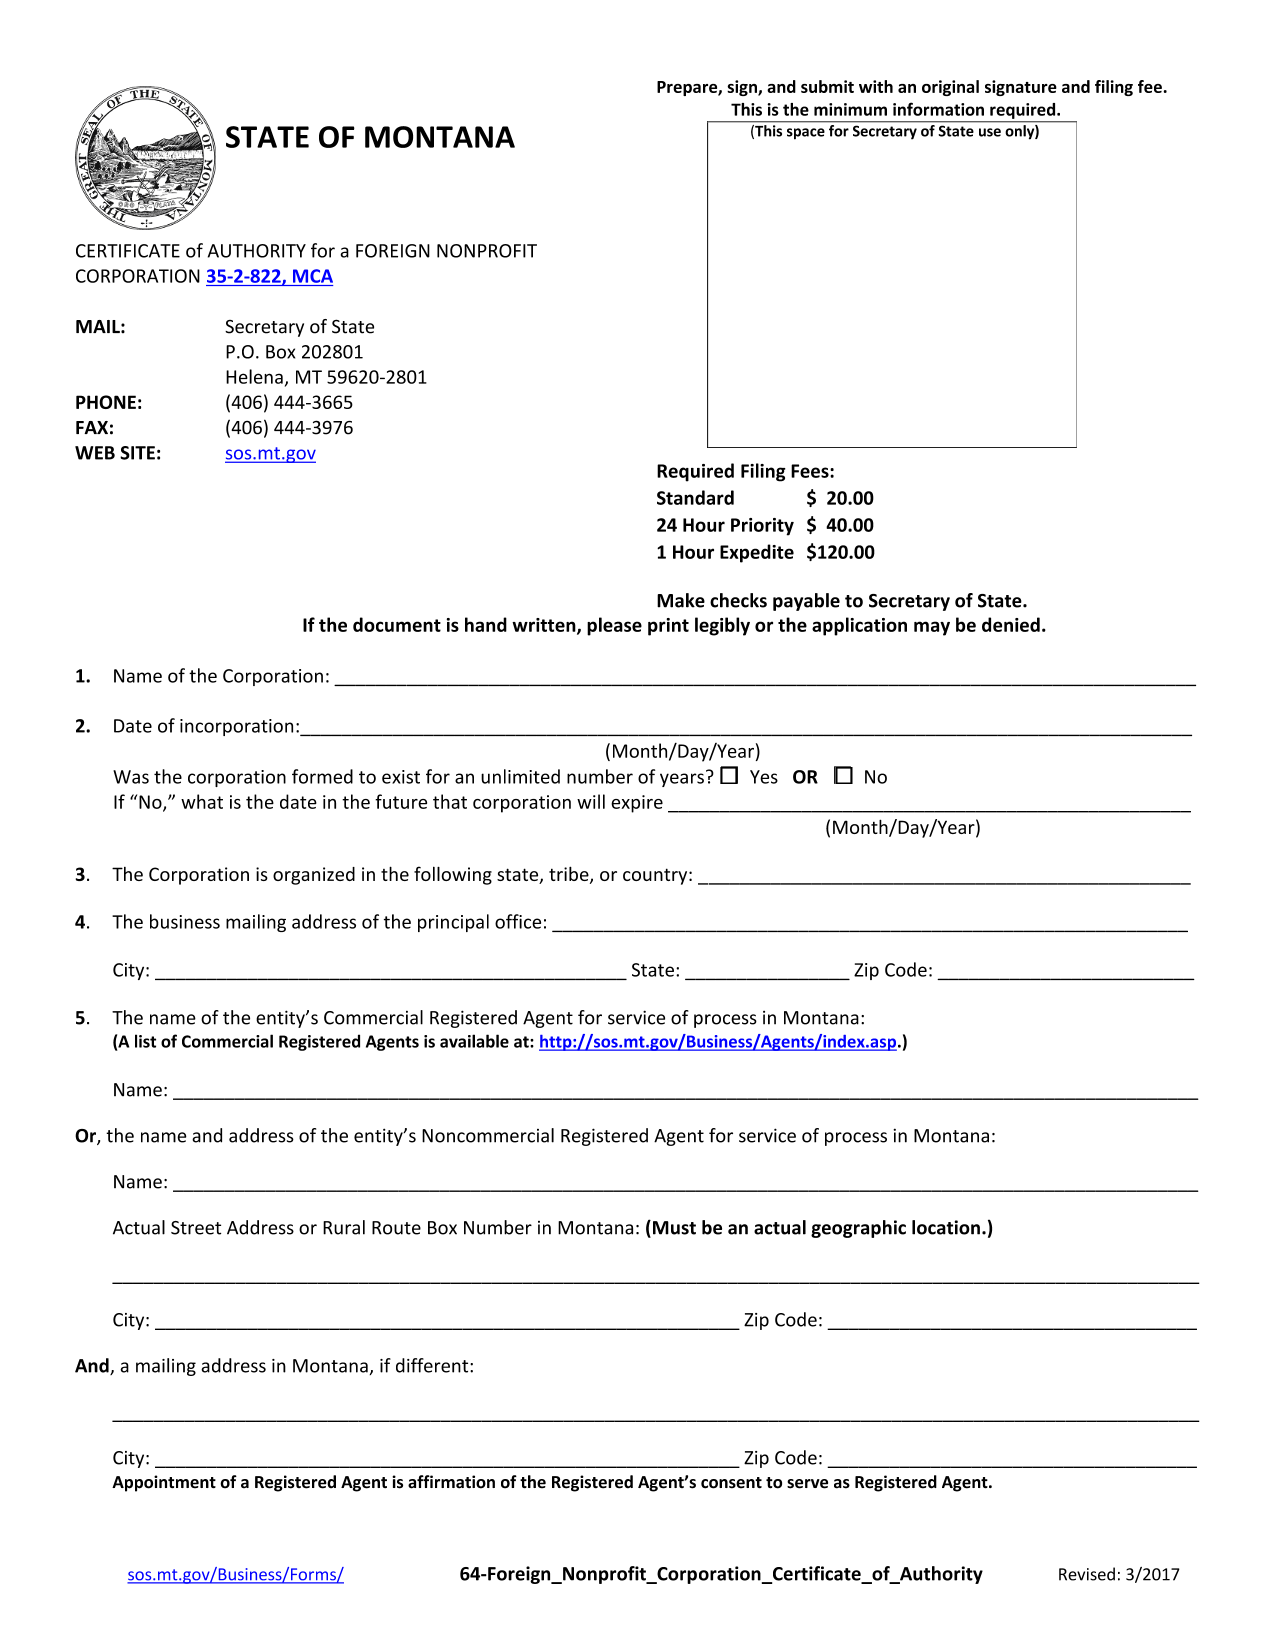 montana-certificate-of-authority-for-foreign-nonprofit-corporation